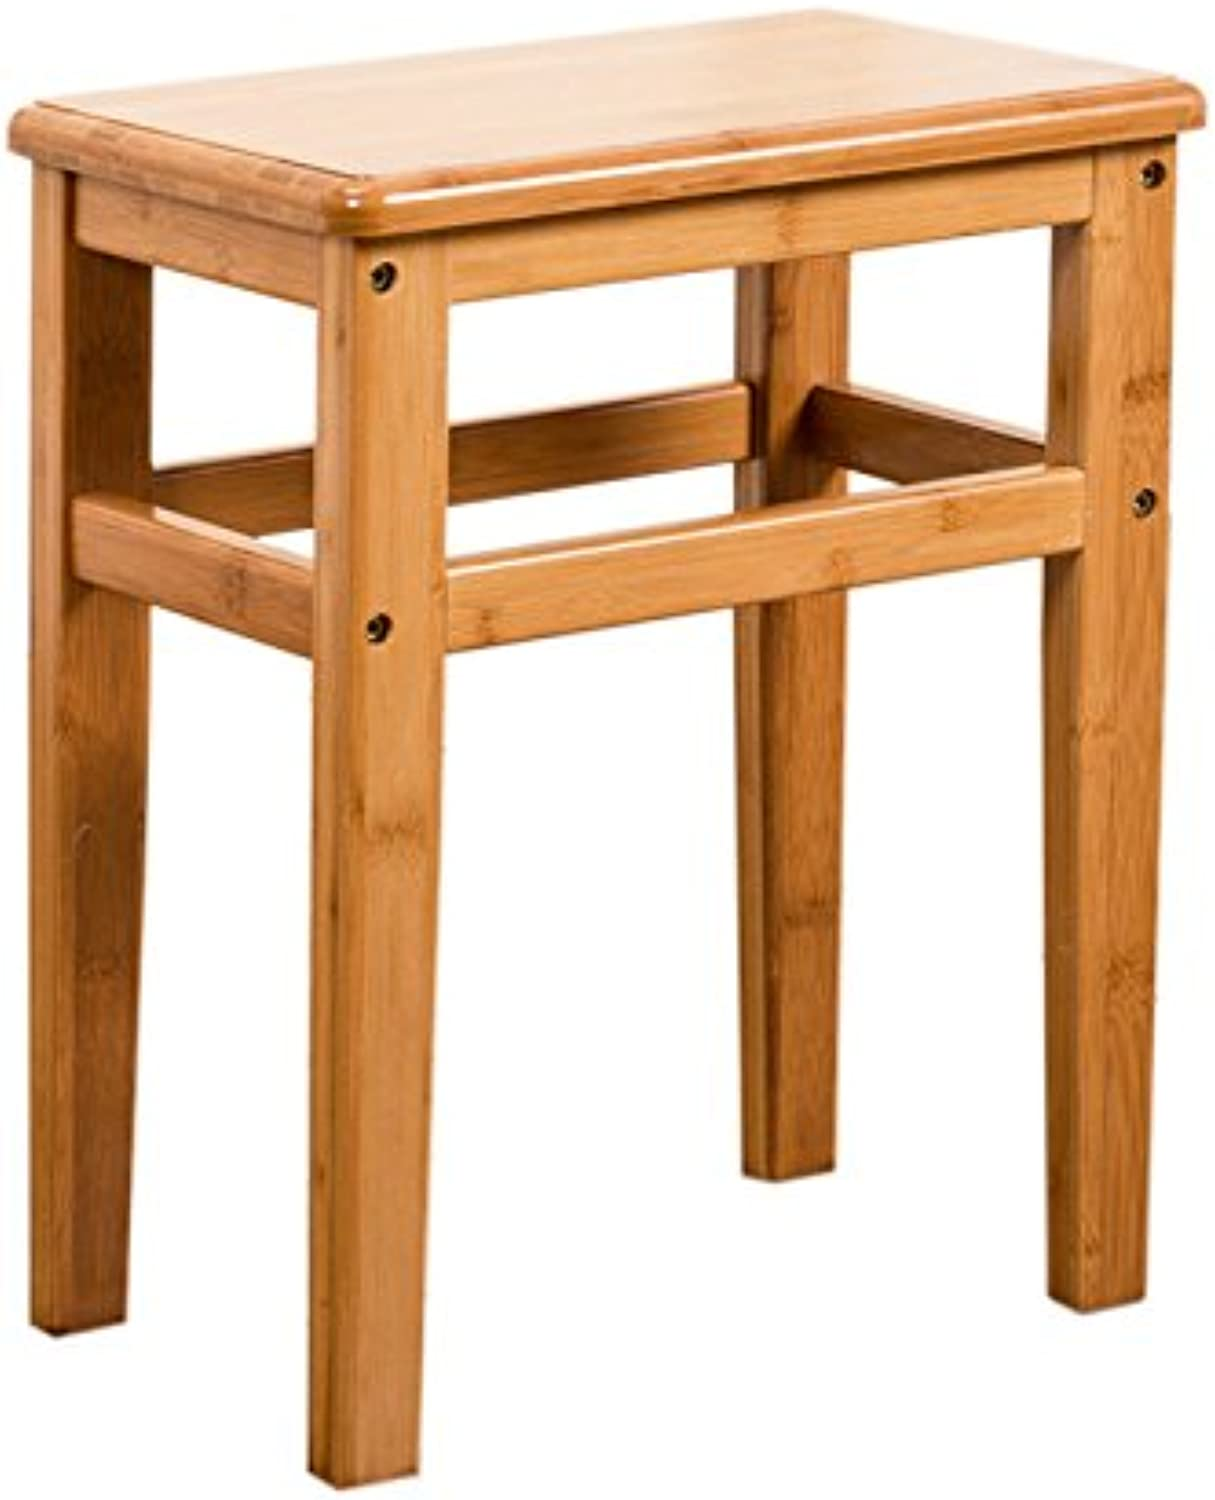 Solid Wood Bench Table Stool Creative Meal Stool Fashion Low Stool Square Stool Wooden Bench 33  23  42cm